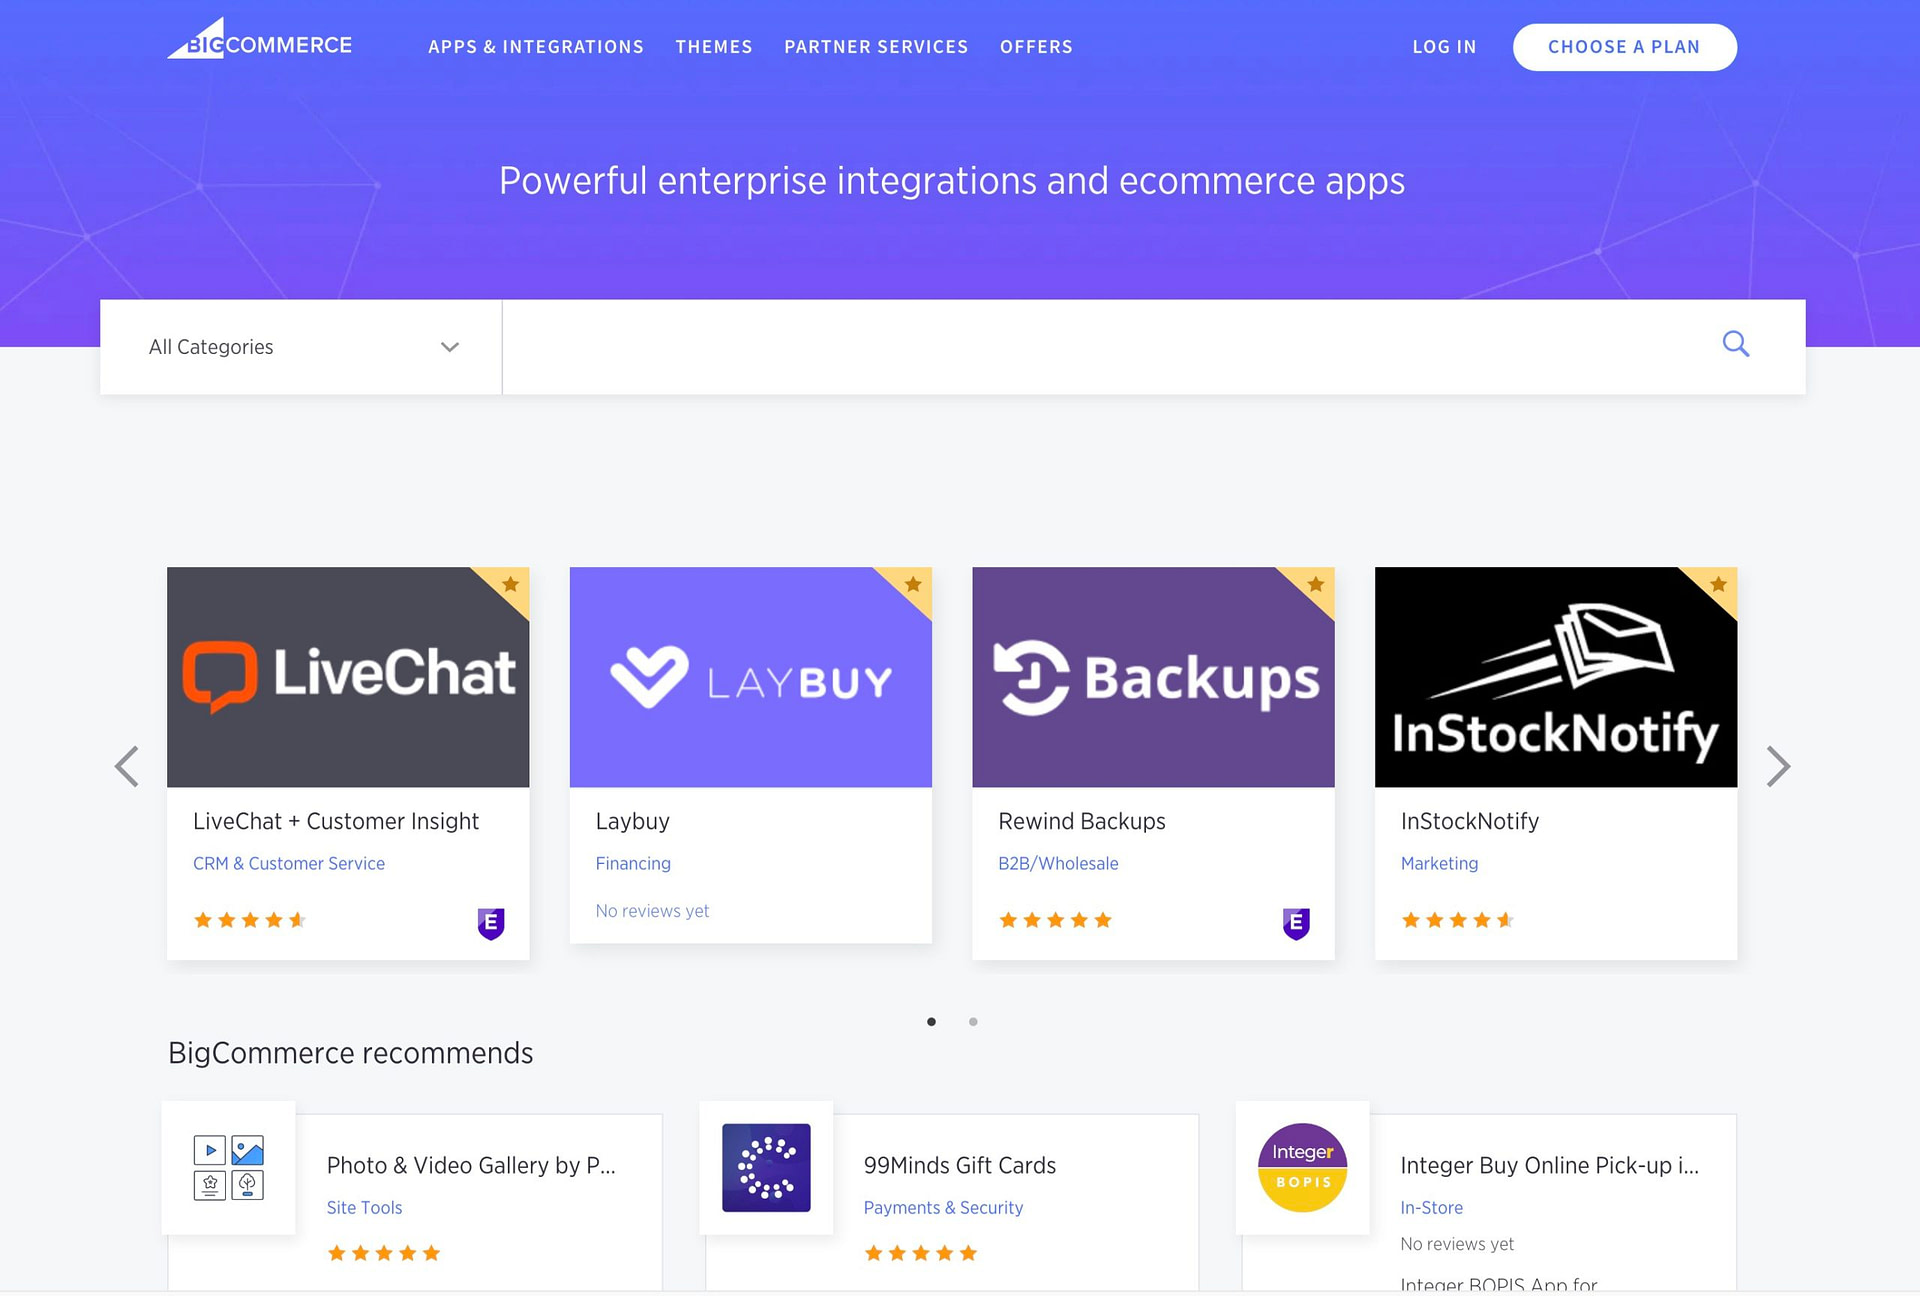 The BigCommerce app store